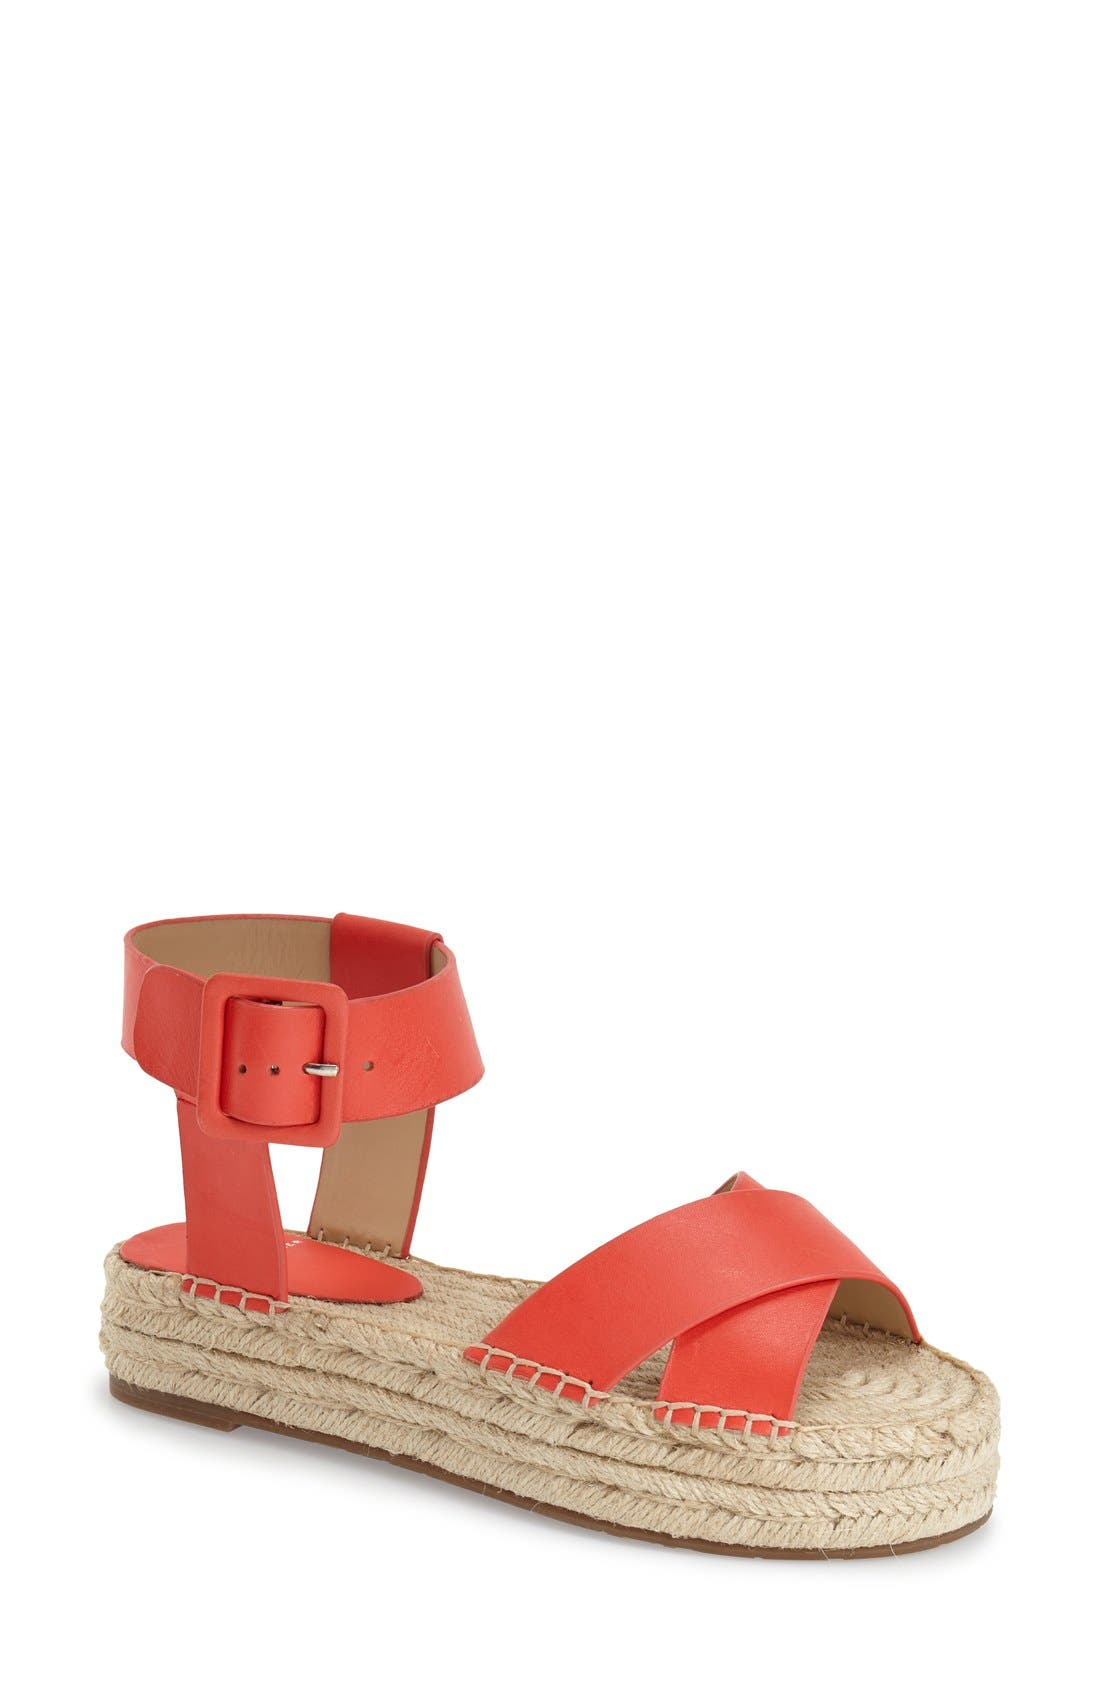 'Vienna' Espadrille Sandal,                             Main thumbnail 1, color,                             Red Leather